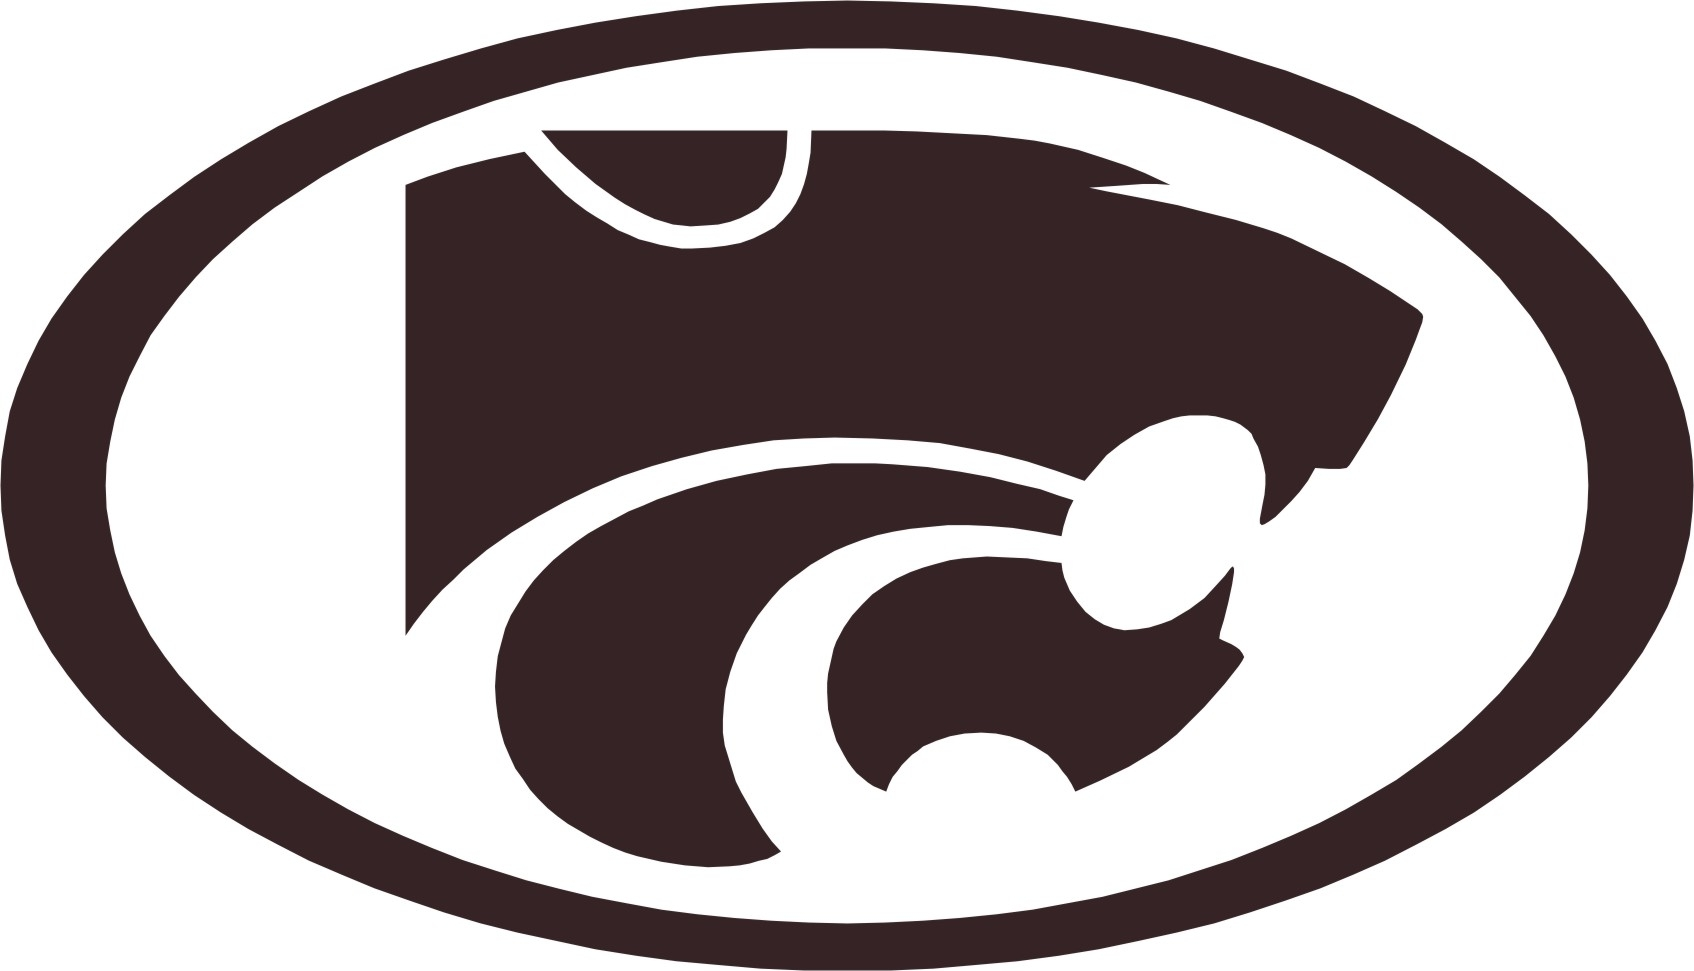 Wildcat clipart ksu Wildcat football Zone Cliparts claw